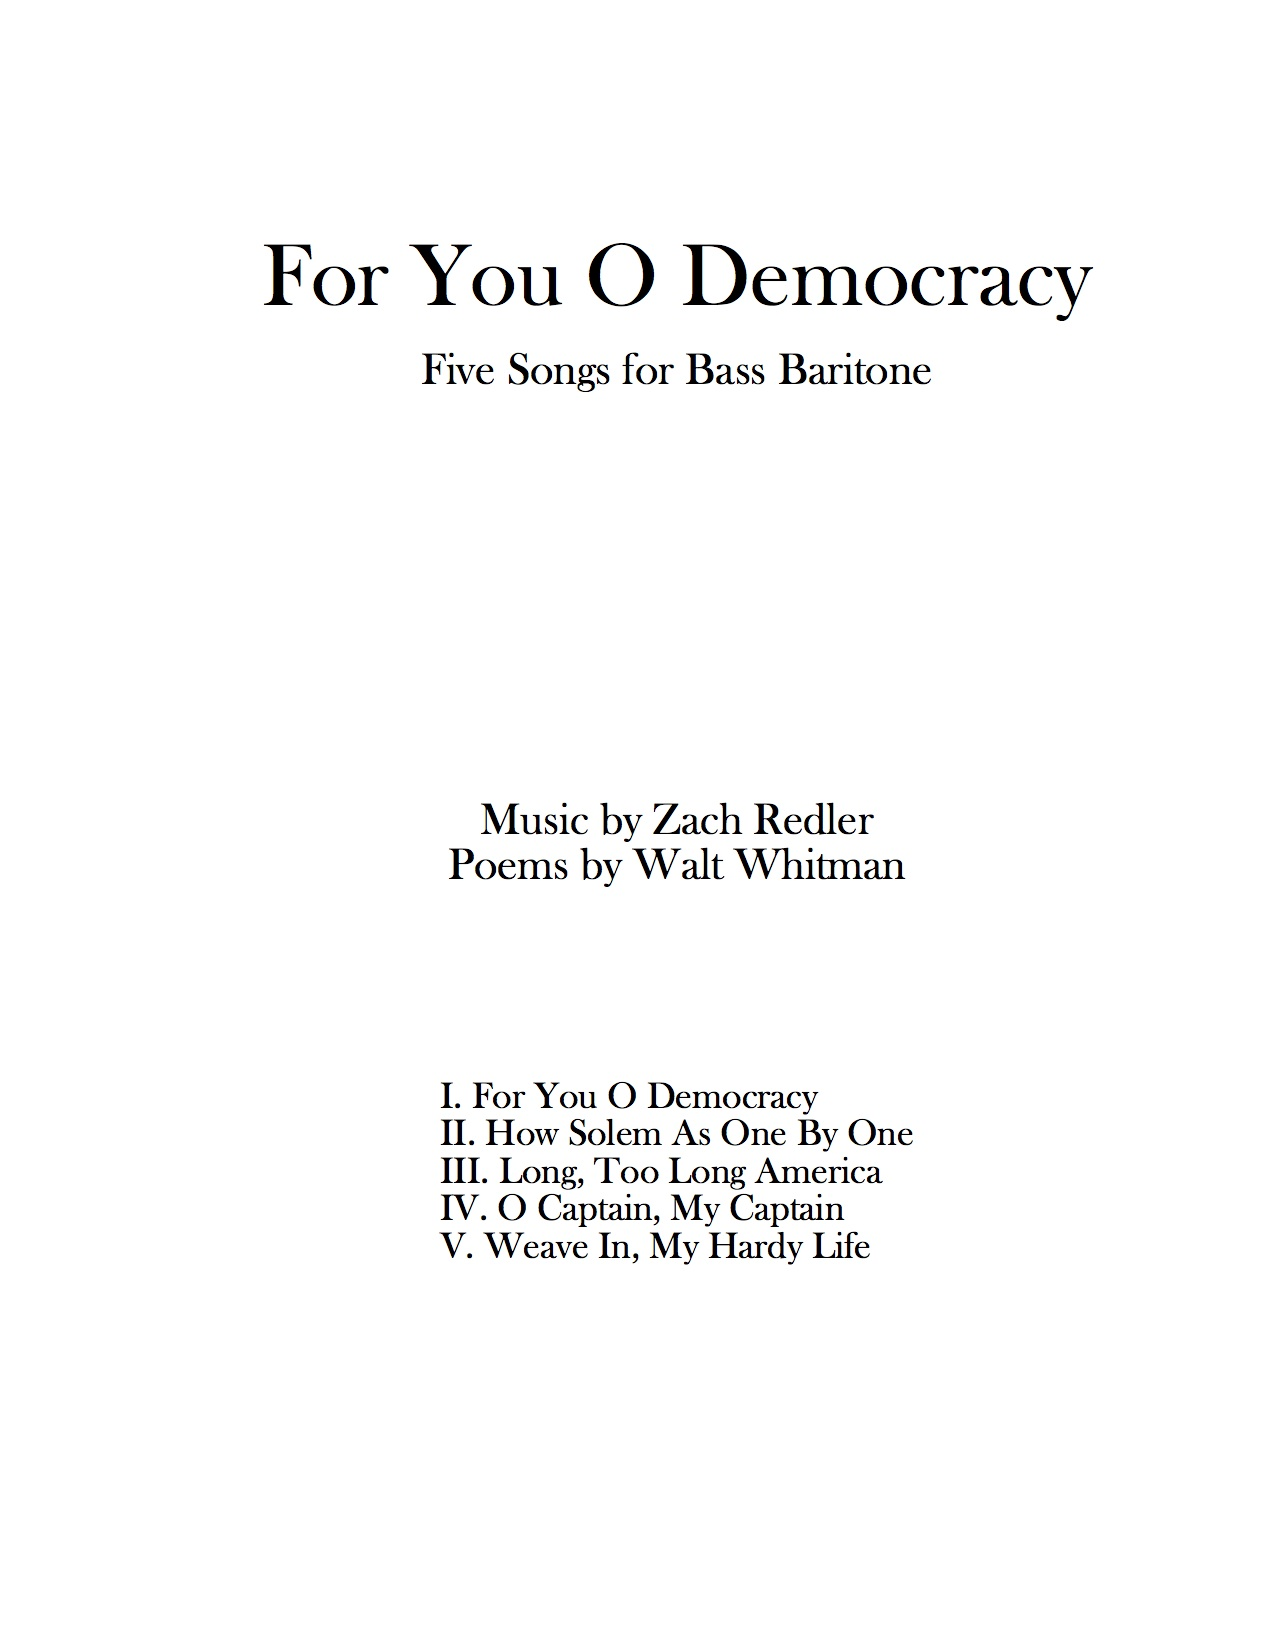 For You O Democracy Cover Page.jpg